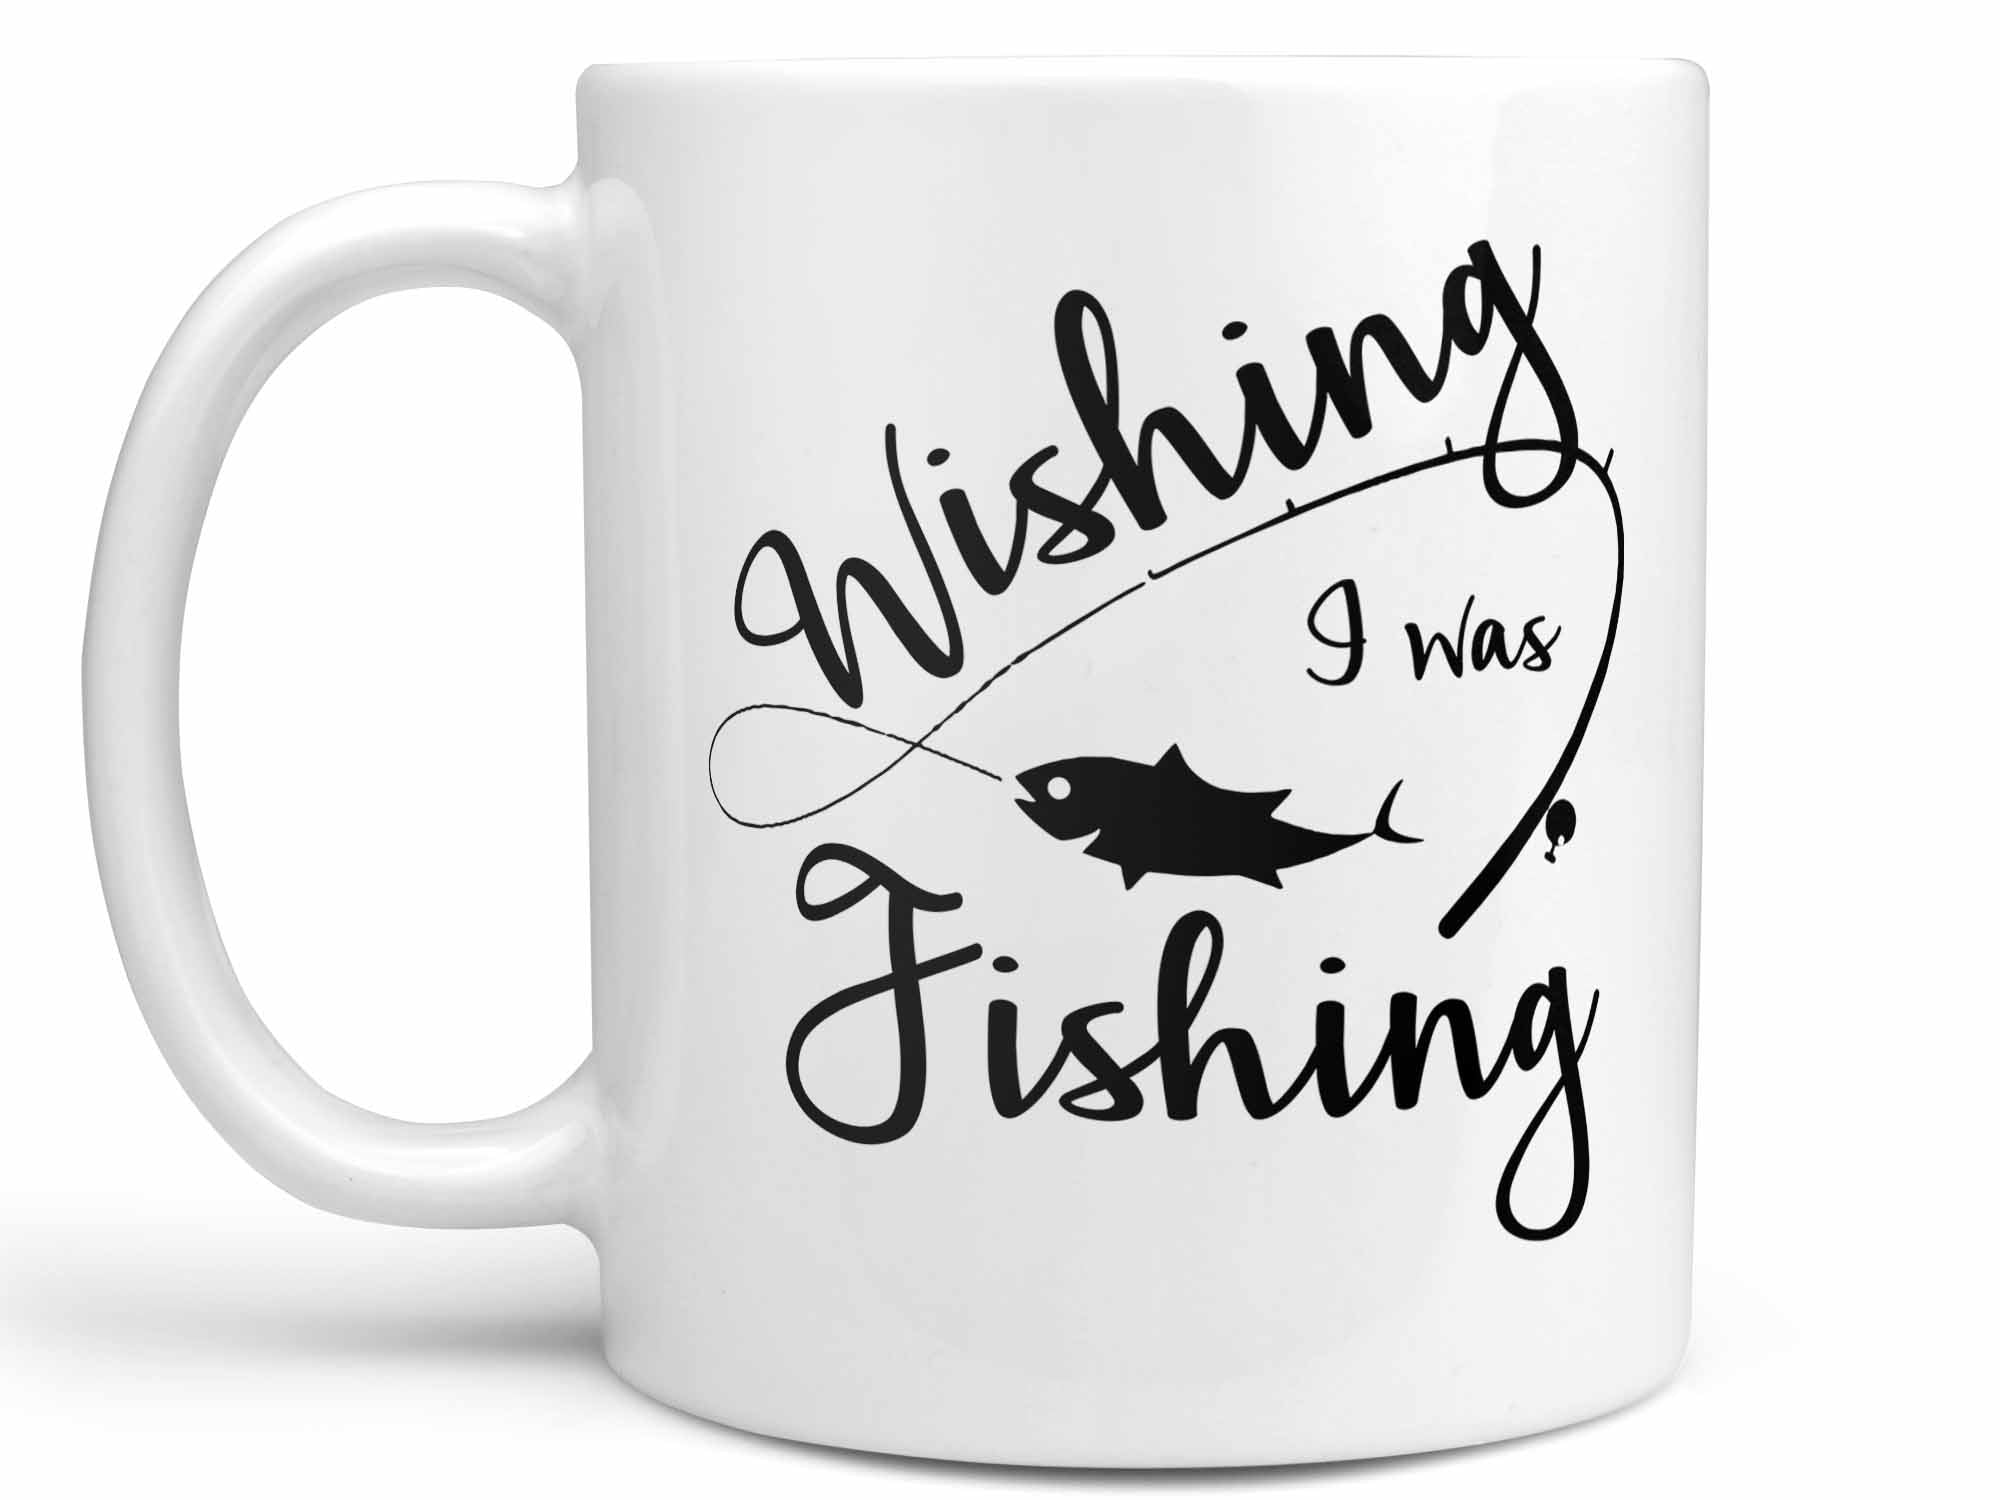 Wishing I Was Fishing Coffee Mug,Coffee Mugs Never Lie,Coffee Mug